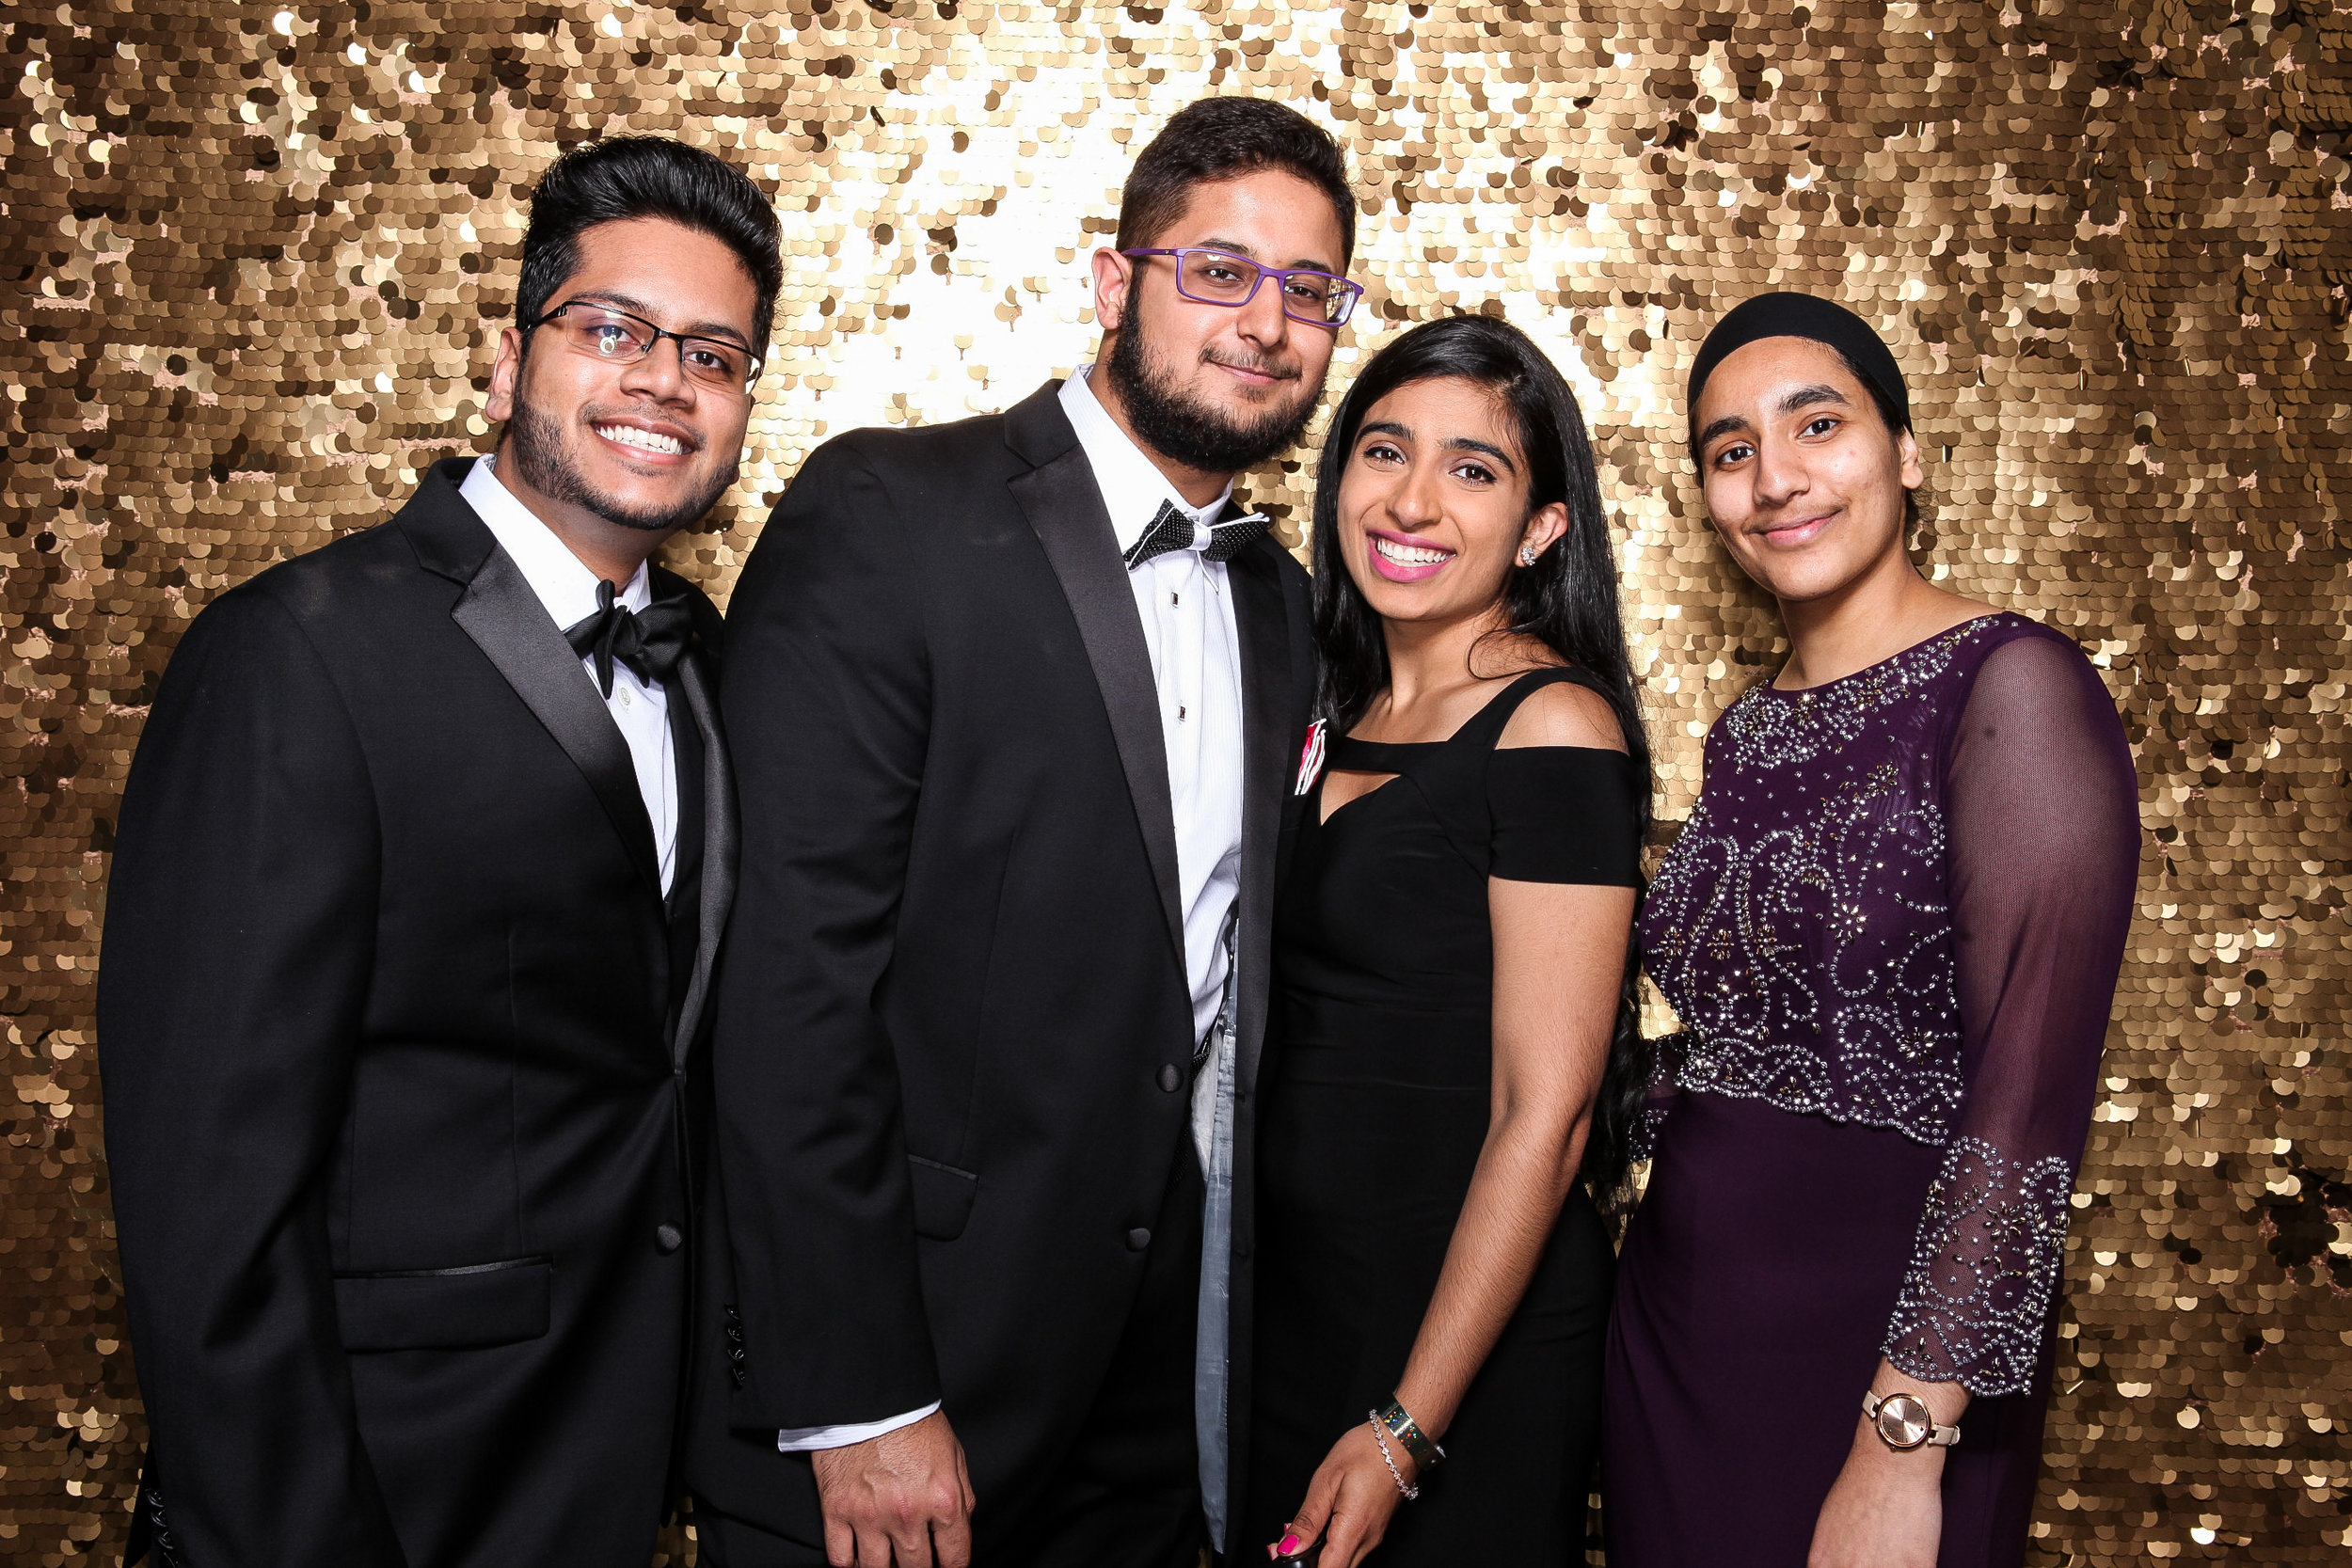 20190503_Adelphi_Senior_Formal-045.jpg